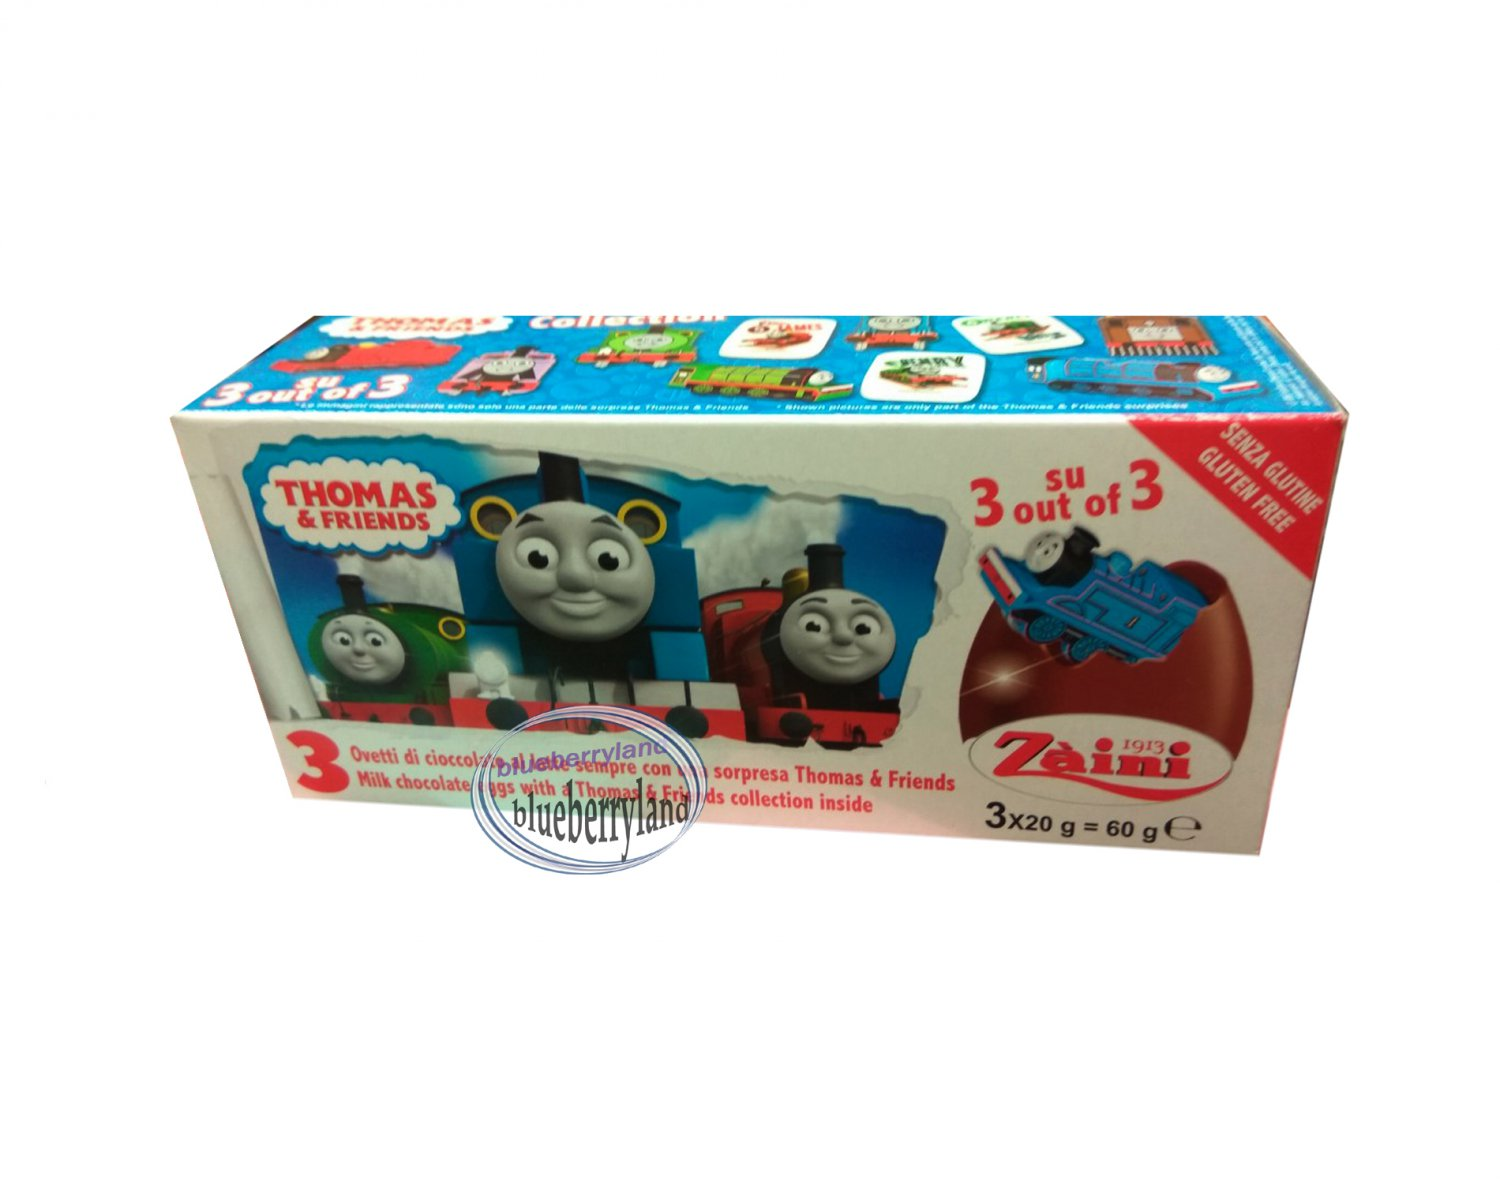 Zaini Thomas & Friends Chocolate Surprise 3 Eggs With Toy Figure Inside choco ladies kid Q7